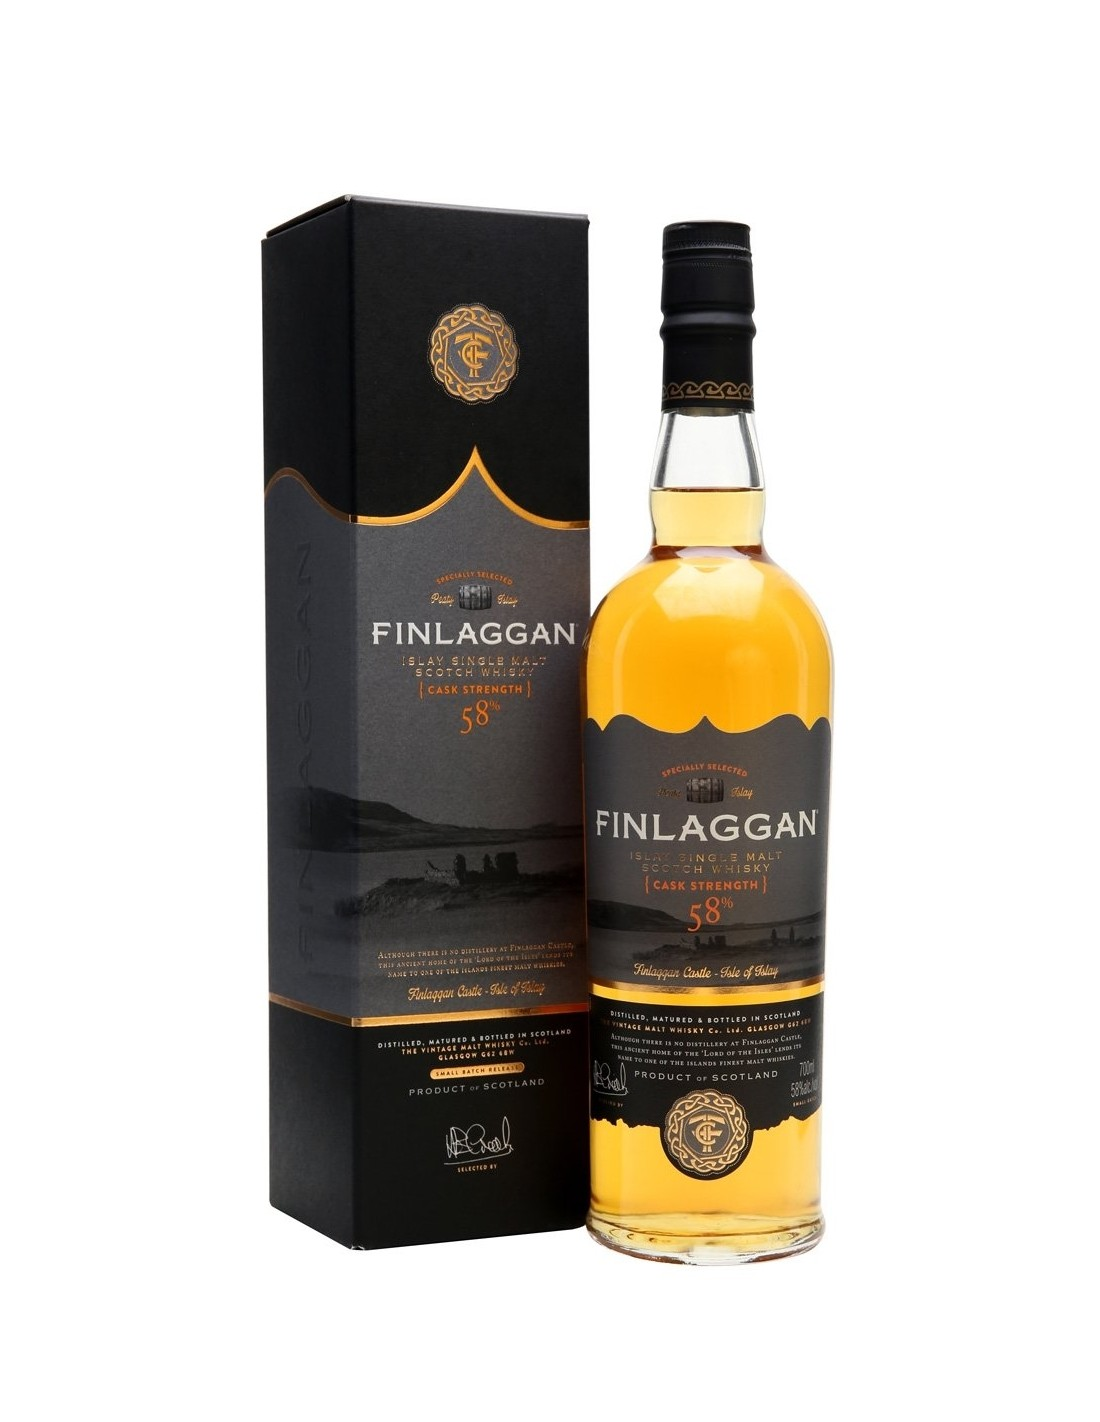 Whisky Finlaggan Cask Strength, 58% alc., 0.7L, Scotia